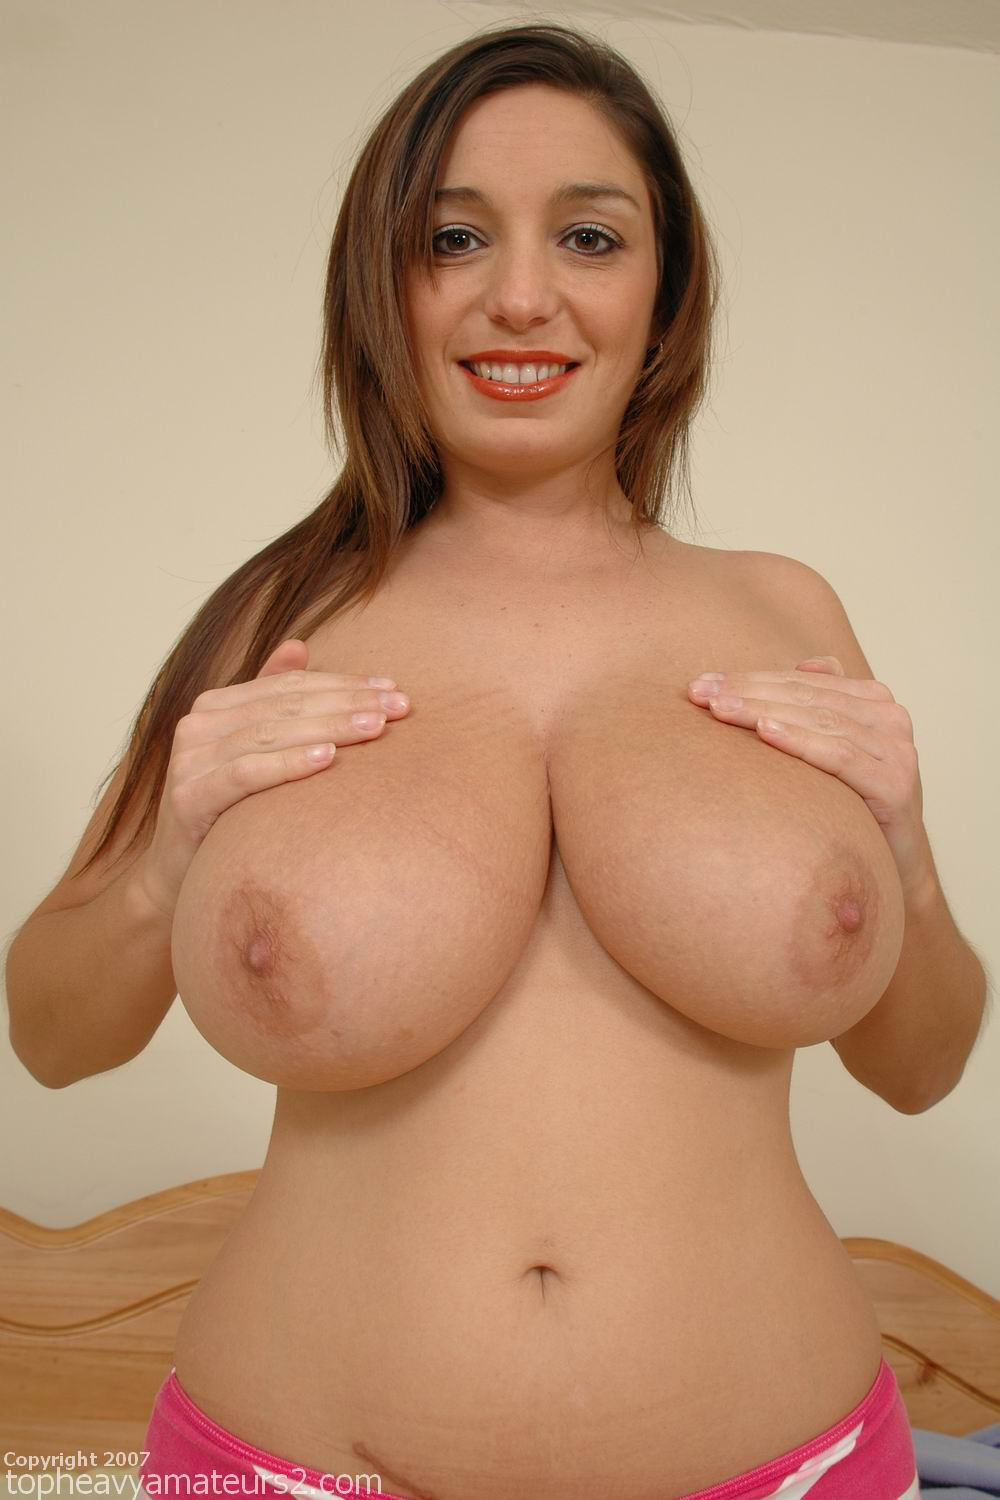 Picture of naked woman with big boobs  adult gallery